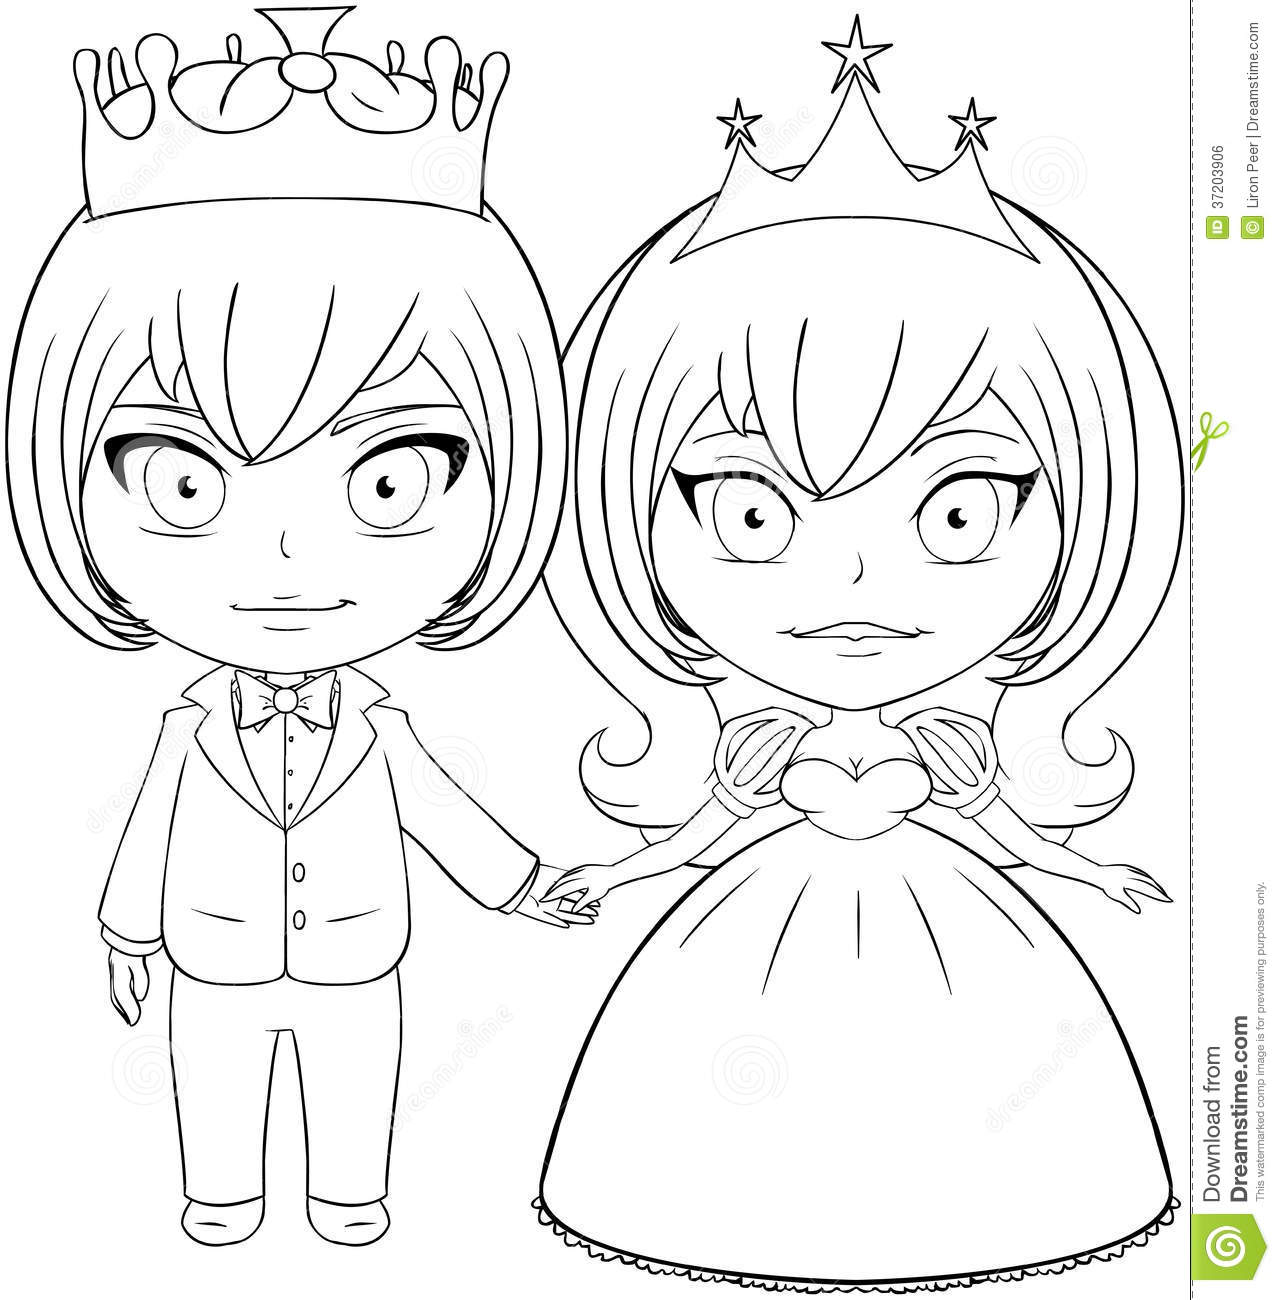 Princess and the frog kissing coloring pages - e-pic.info